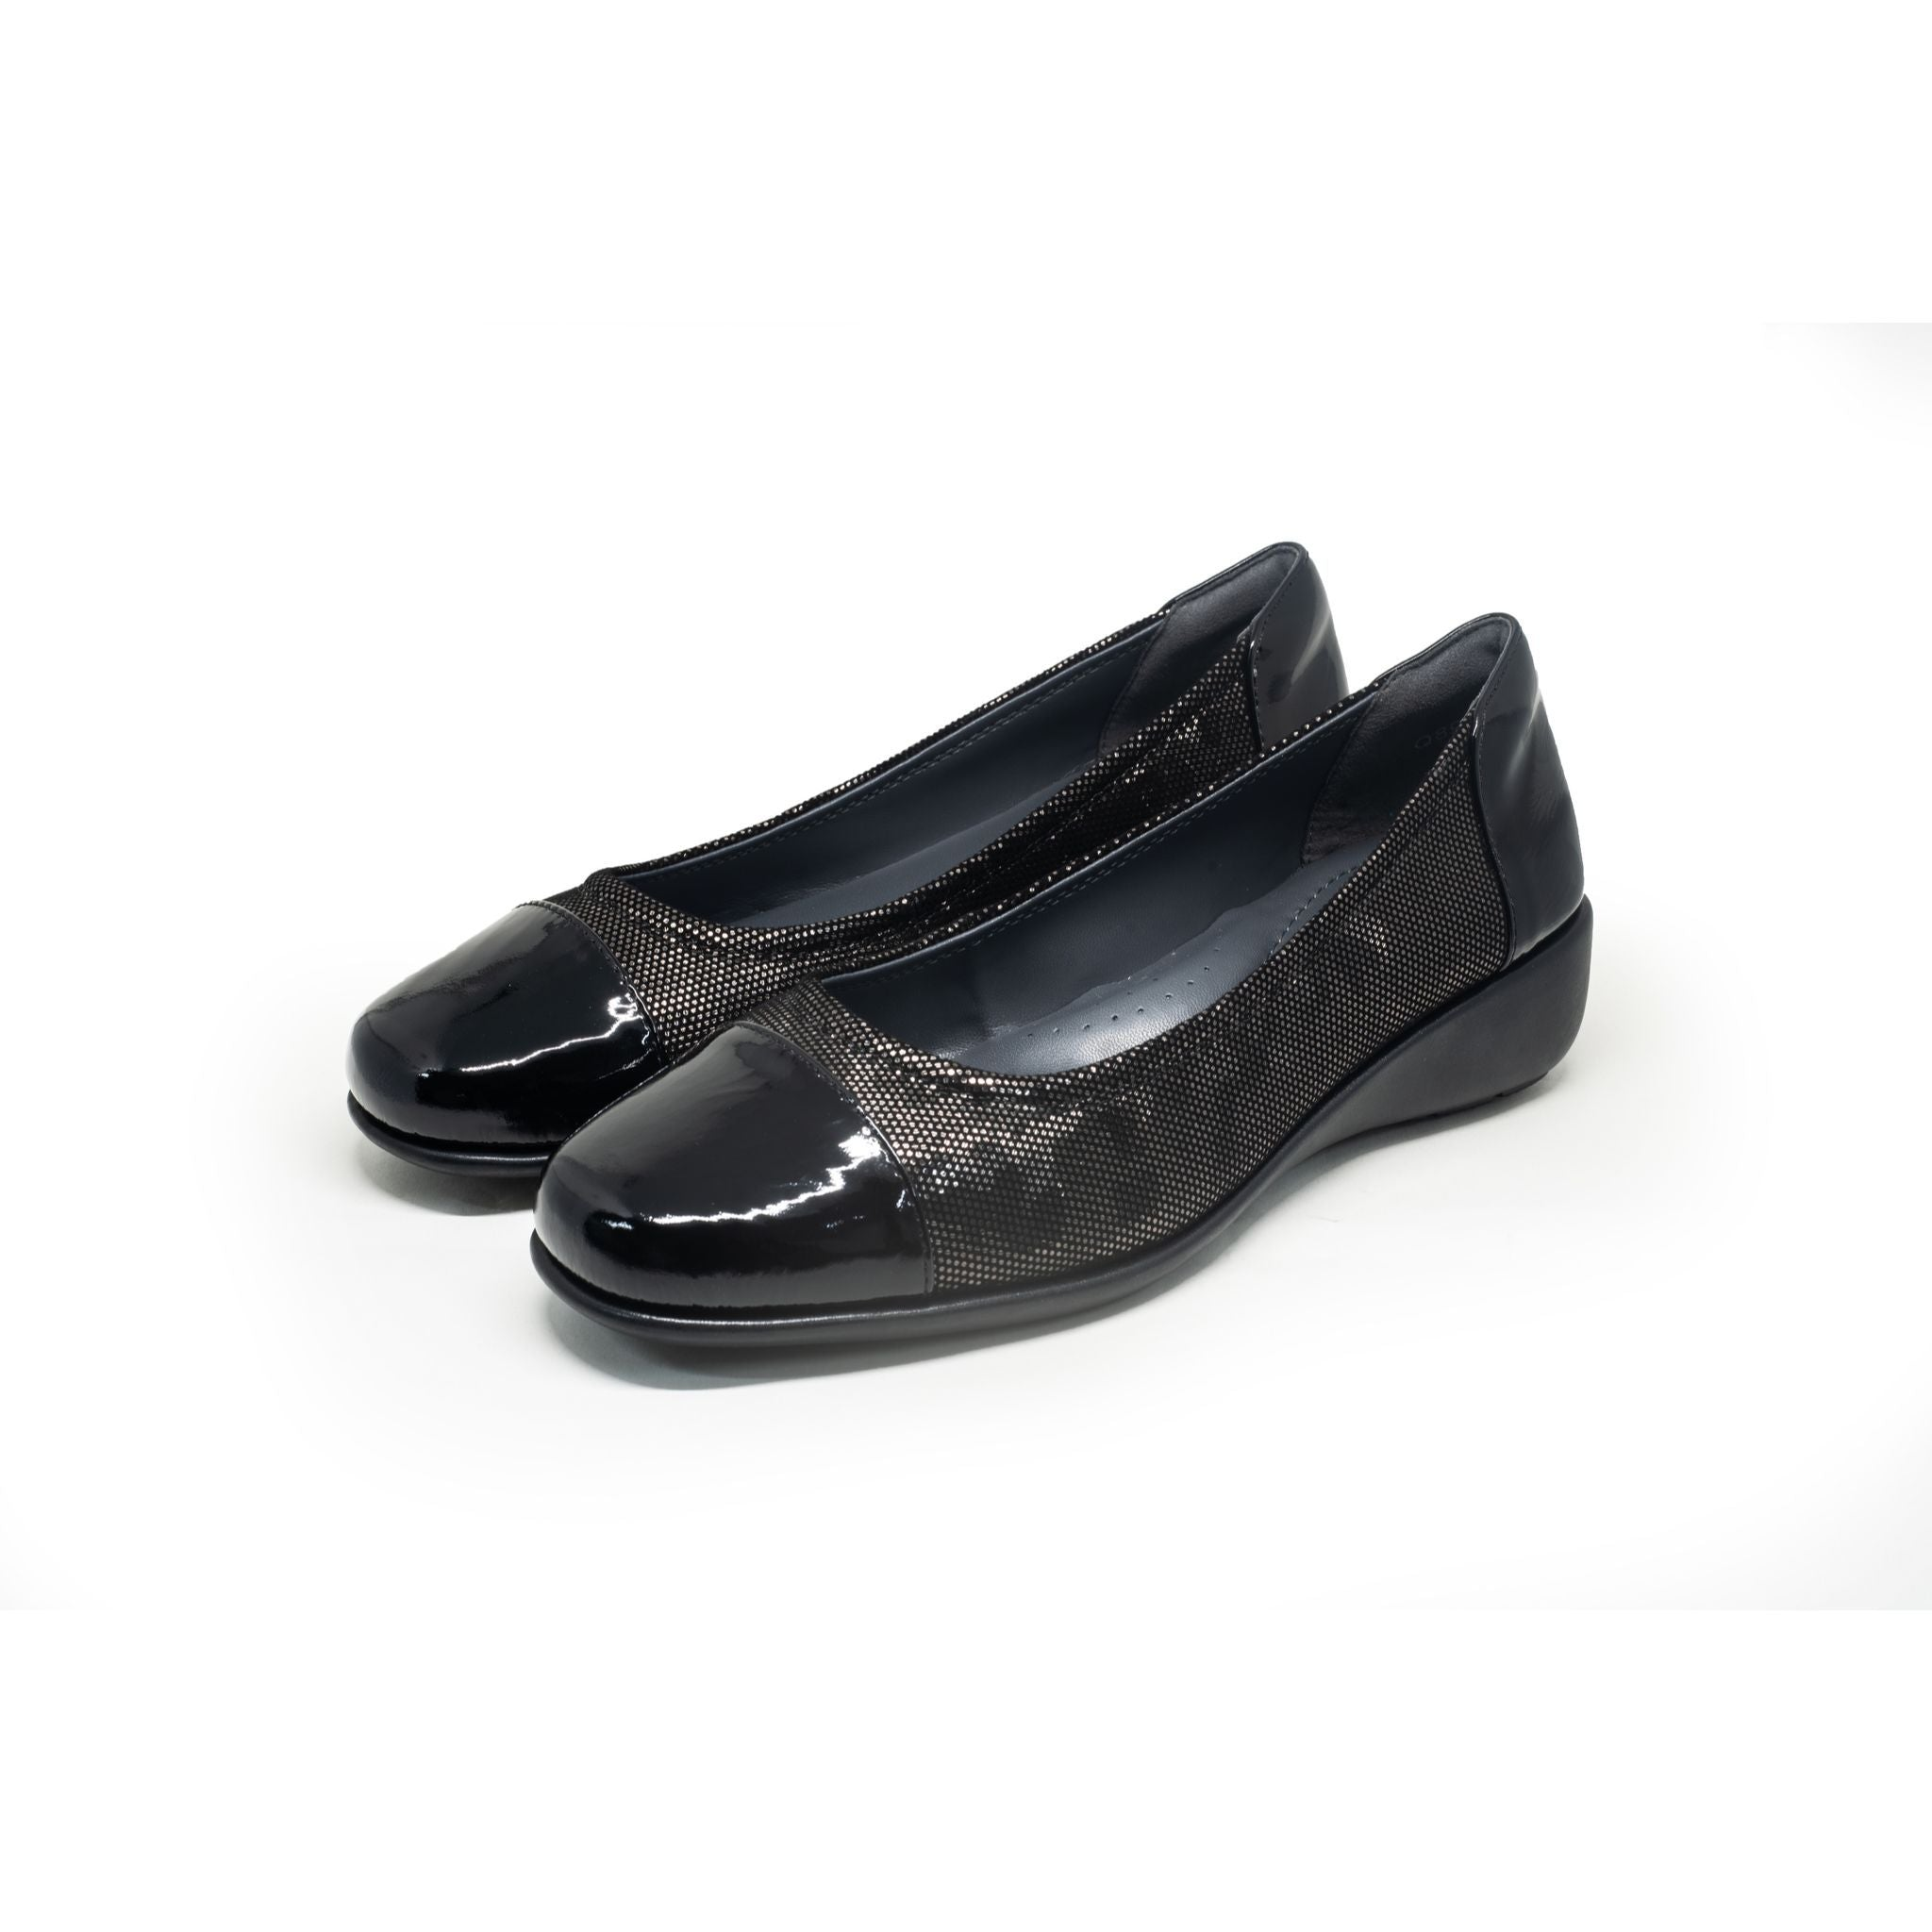 Barani Textured Leather Pumps With Micro Wedge 8948-128TX Black